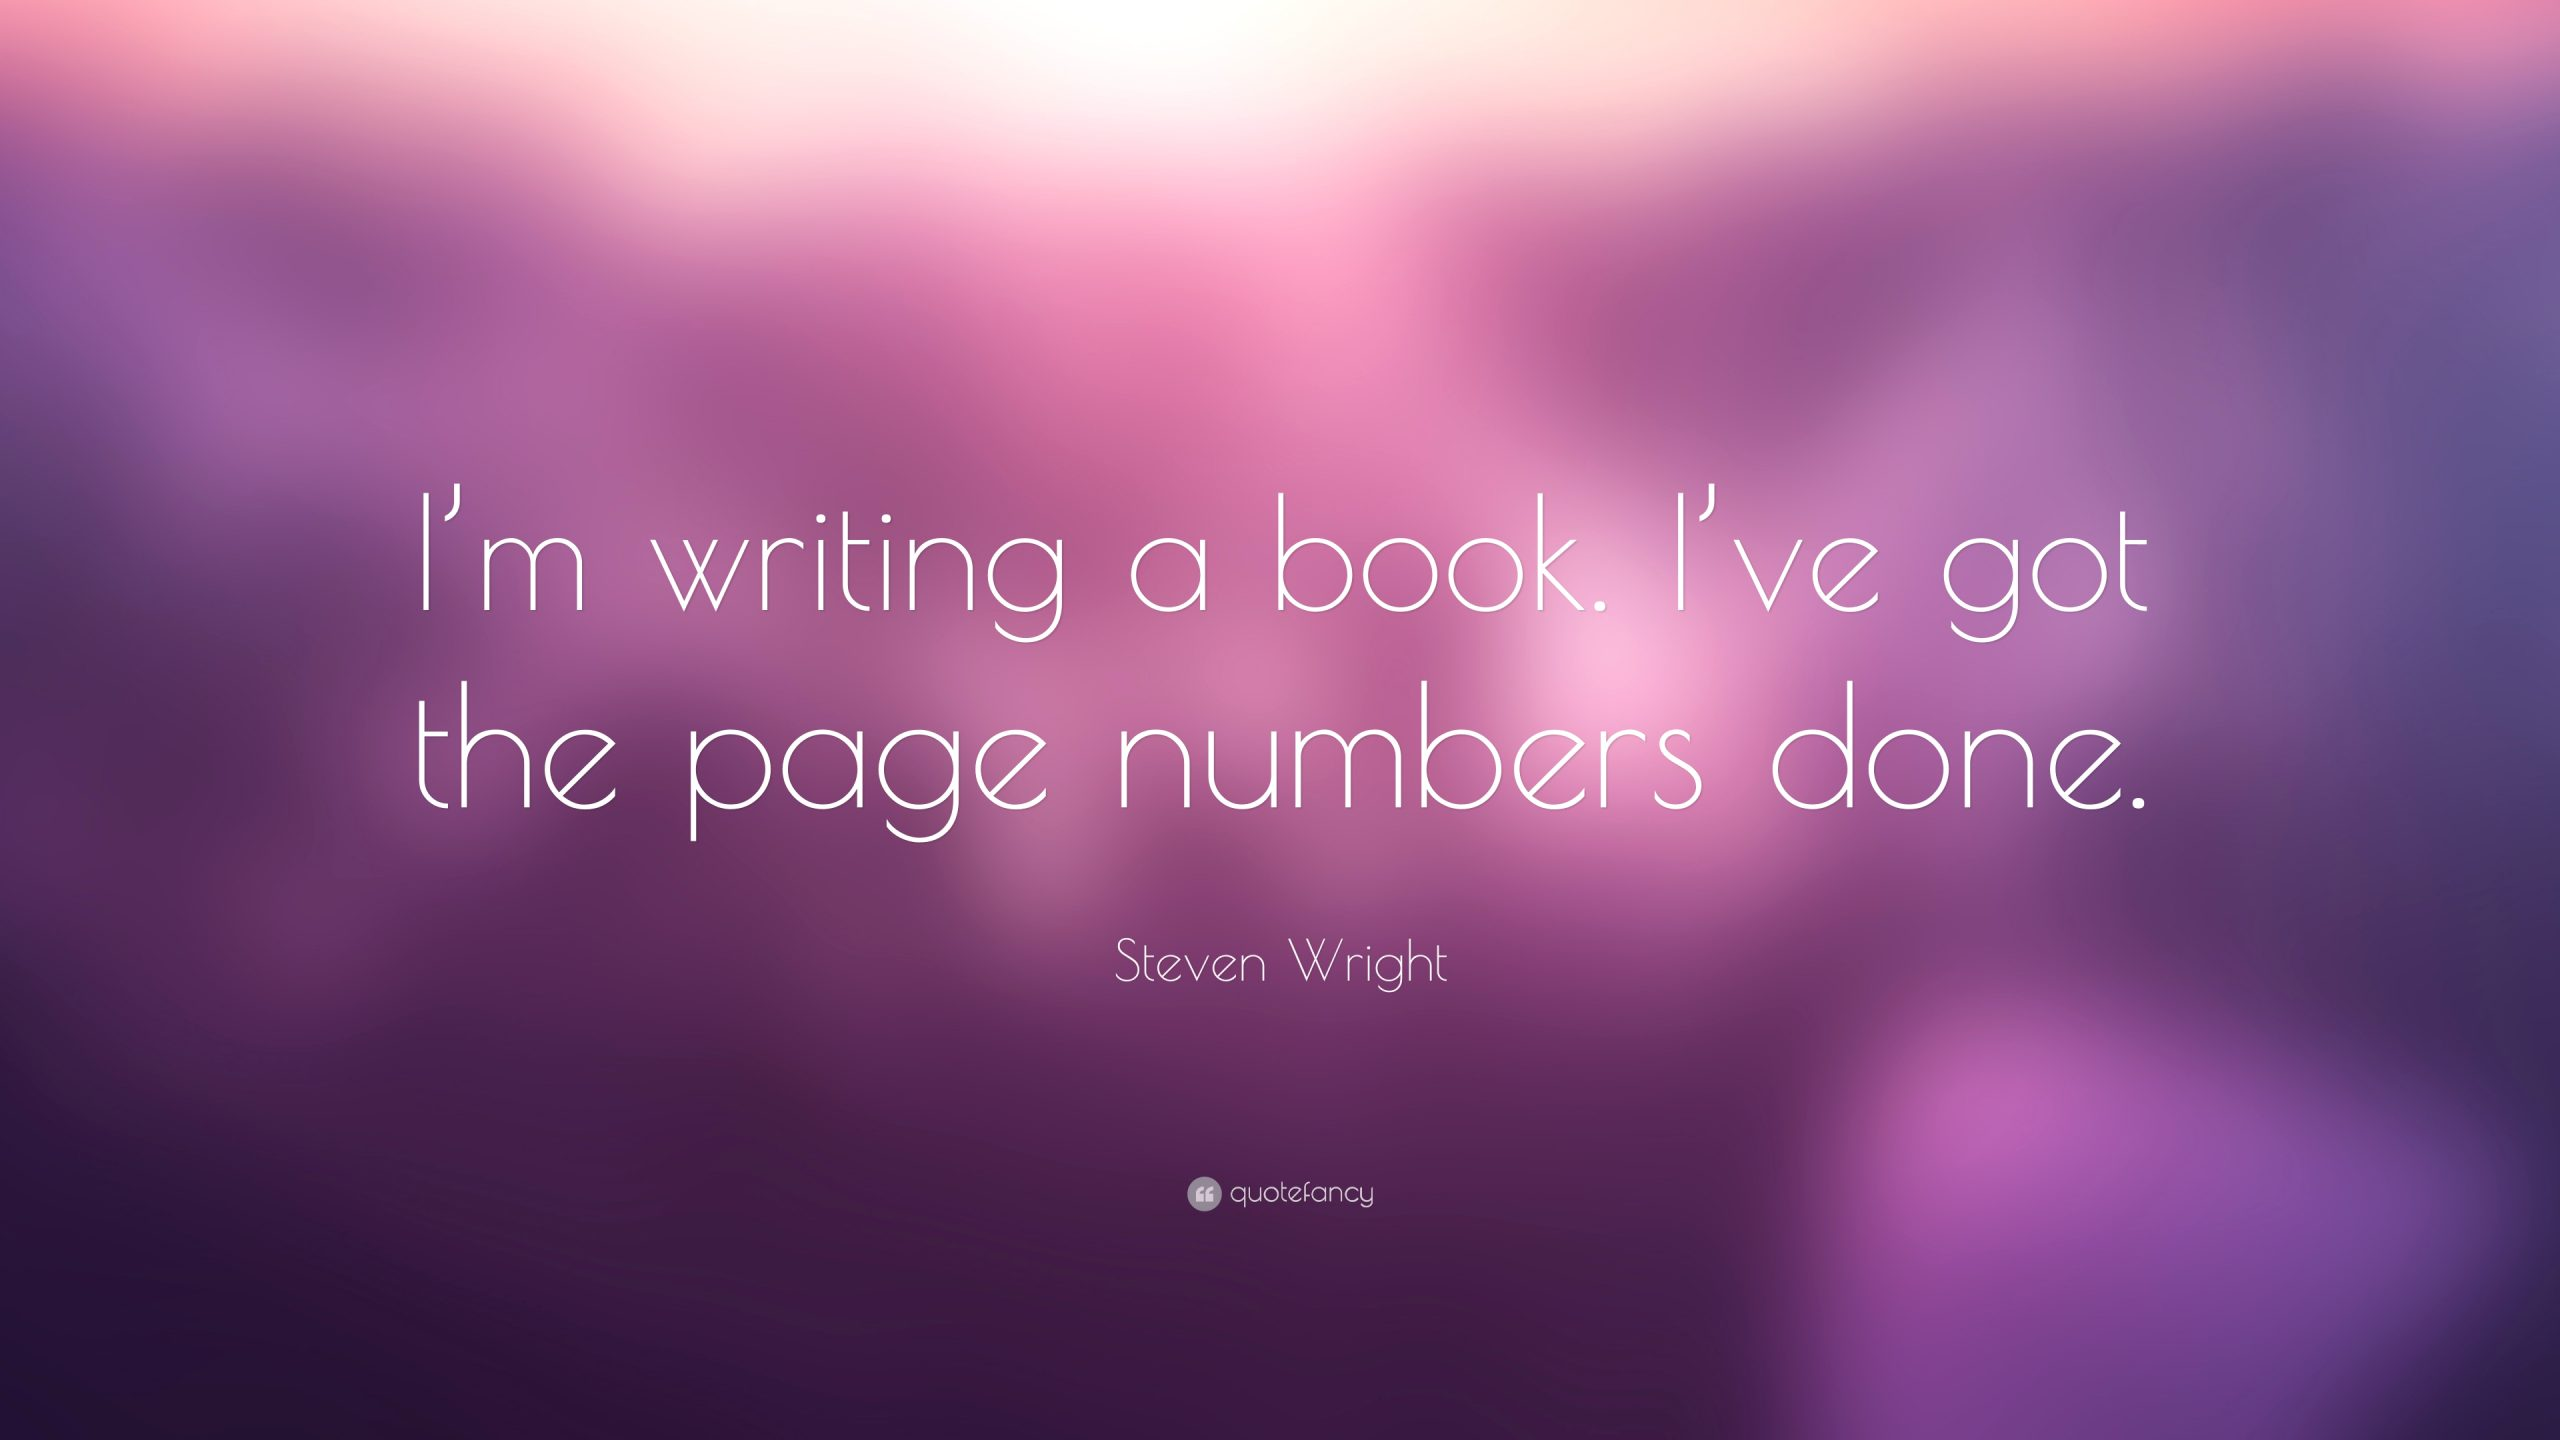 Steven Wright I m writing a book I ve got the page numbers done